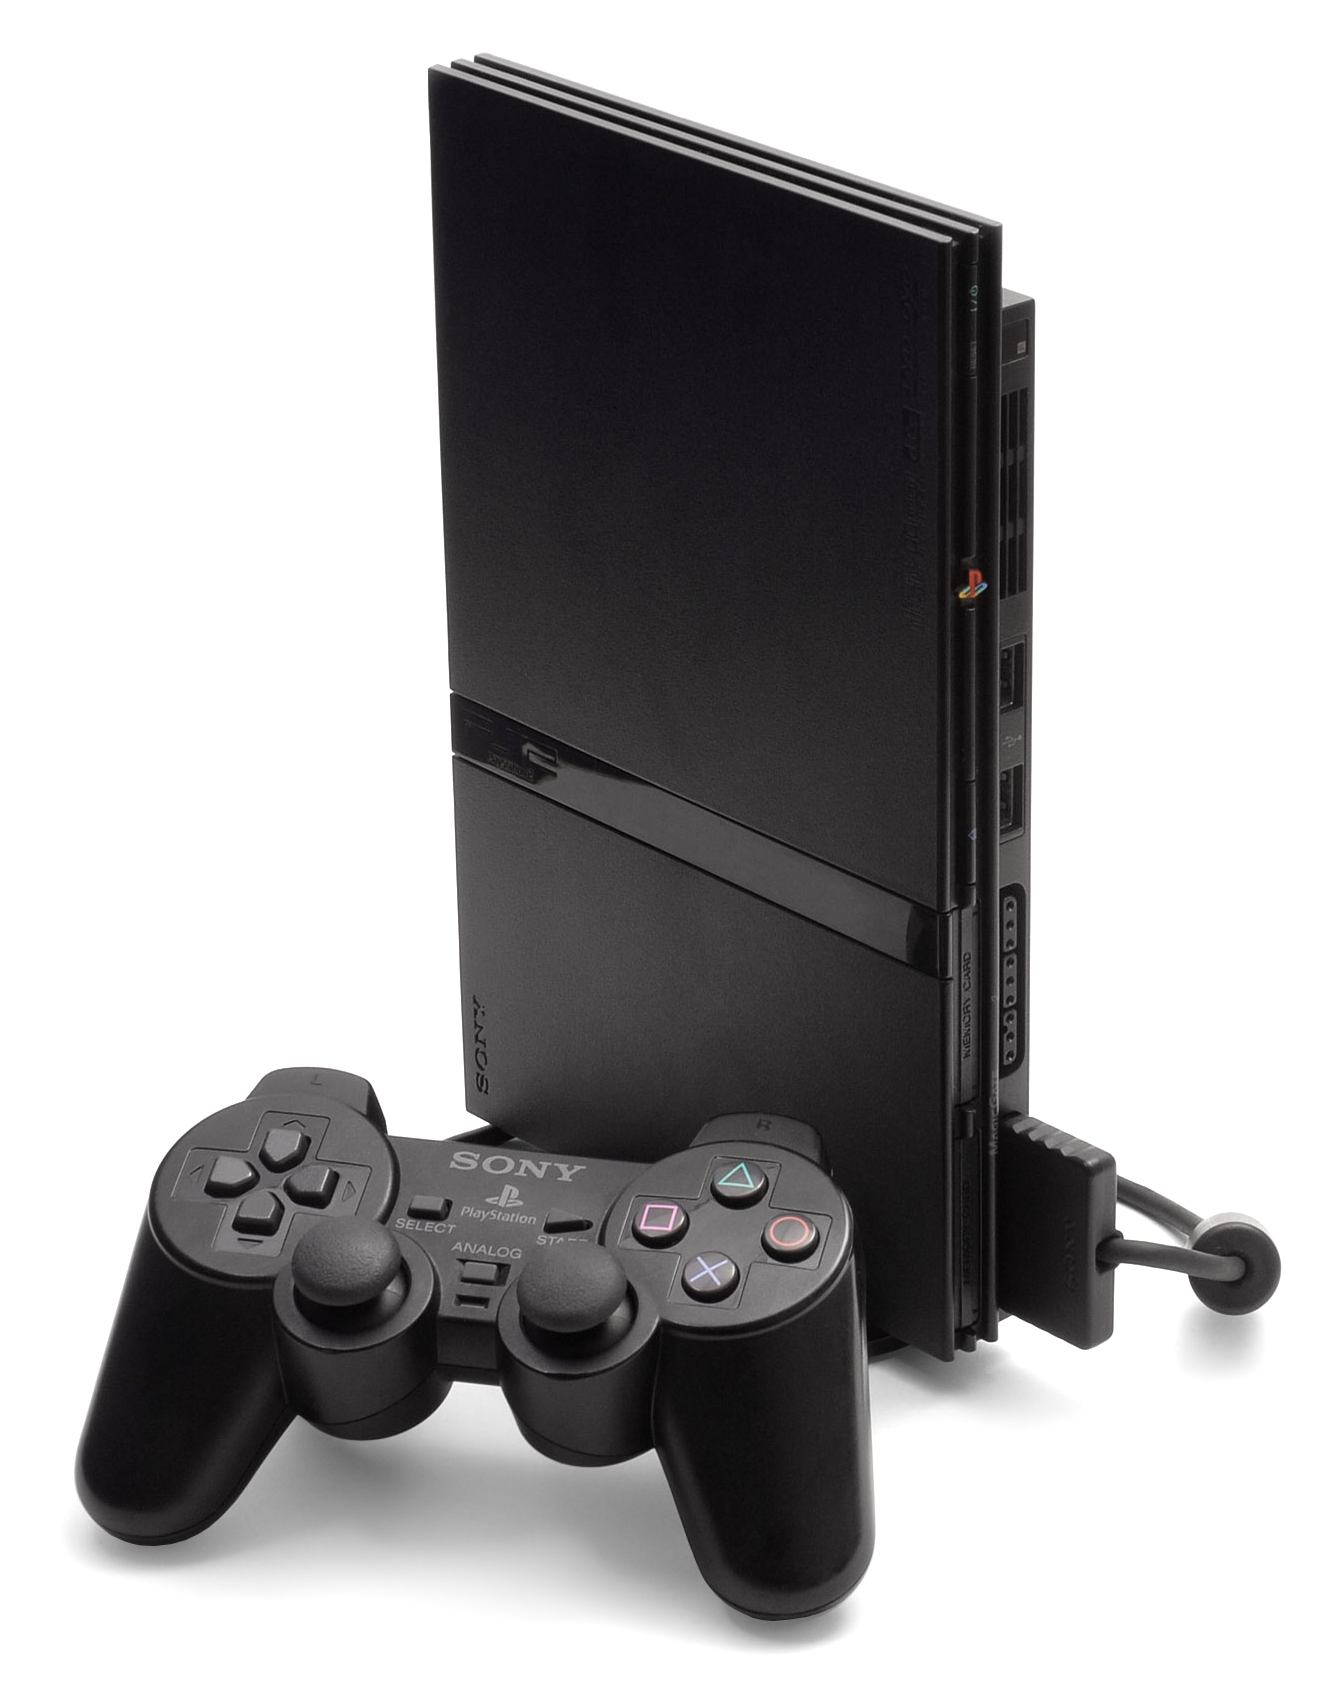 File:PS2-slim-console.png - Wikipedia, the free encyclopedia